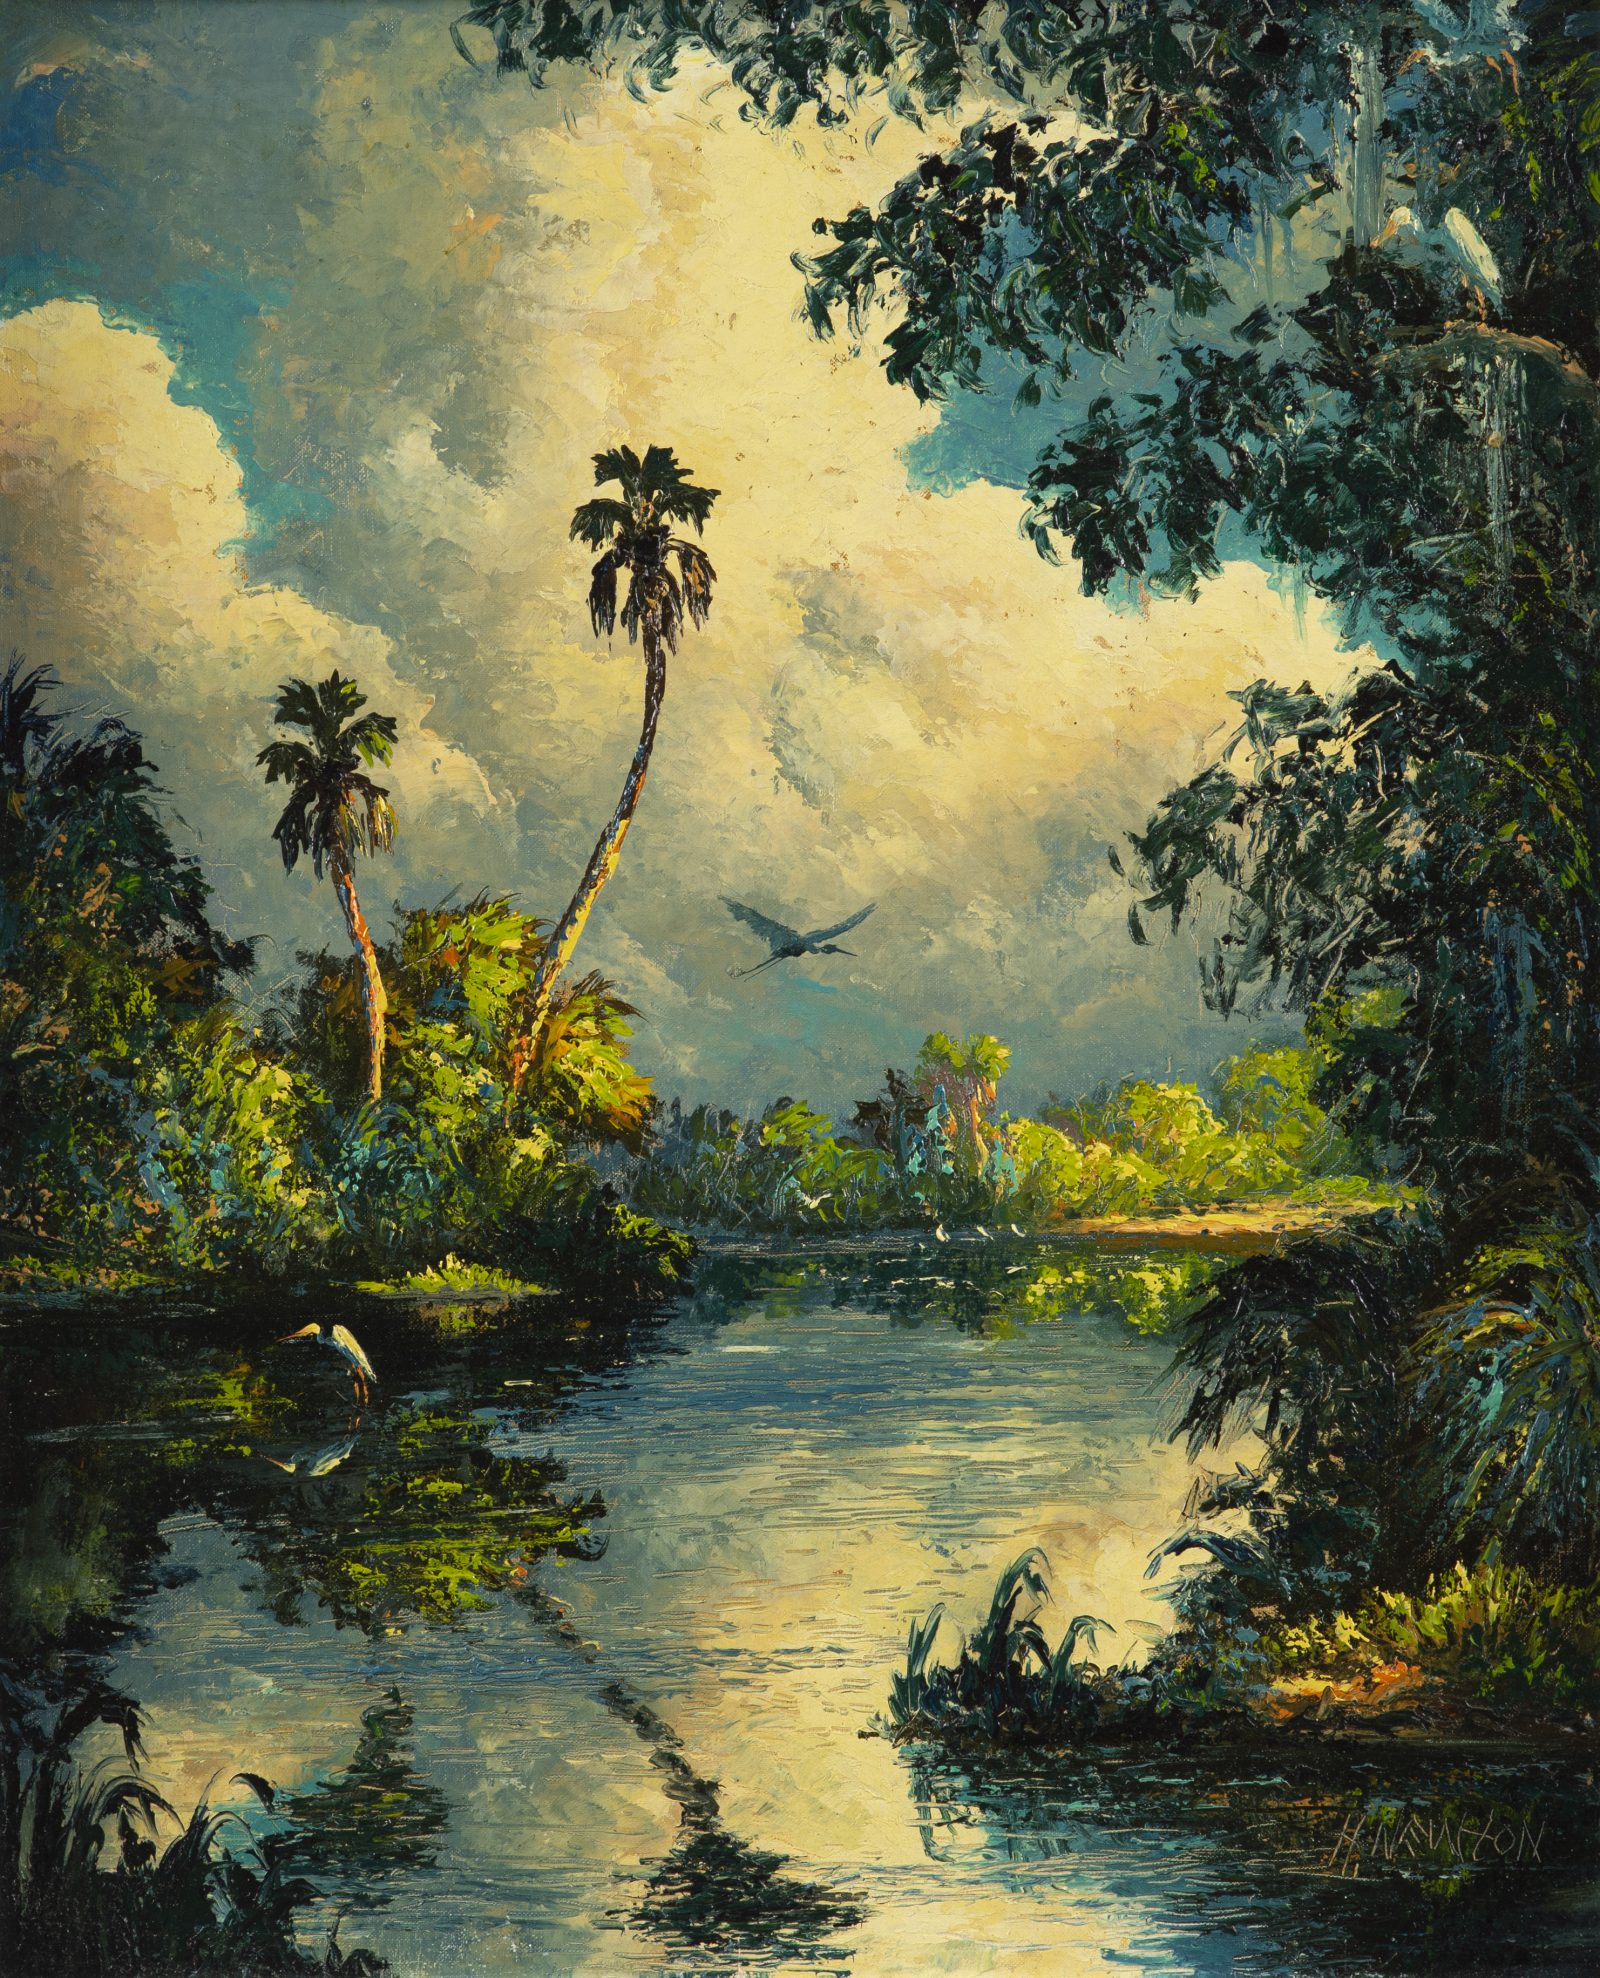 Harold Newton Untitled [ Early river scene with herons ] n.d. Oil on Upson board 25 ¾ x 20 ¾ in. Courtesy of the Asselstine Collection © Harold Newton Photography by Tariq Gibran